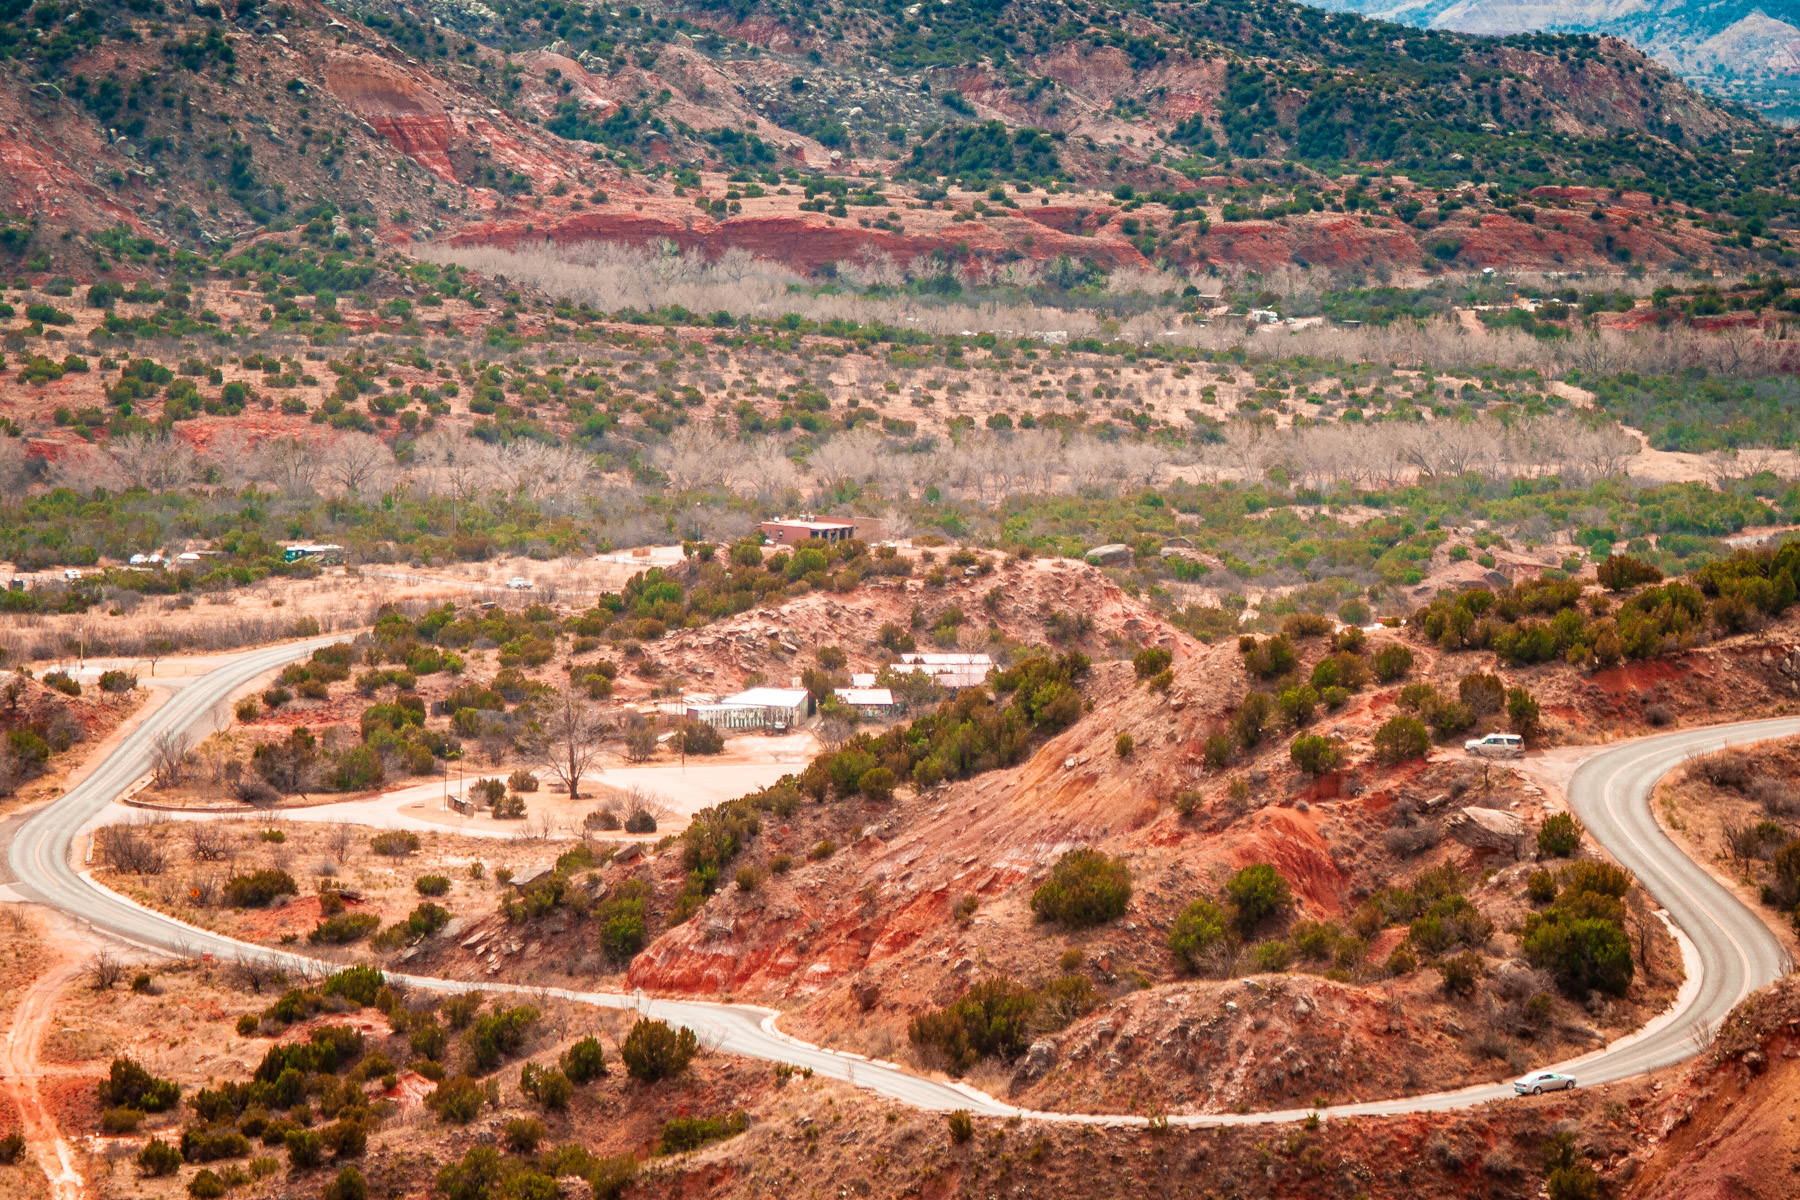 Park Road 5 descends more than 800 feet to the bottom of Palo Duro Canyon, Texas.